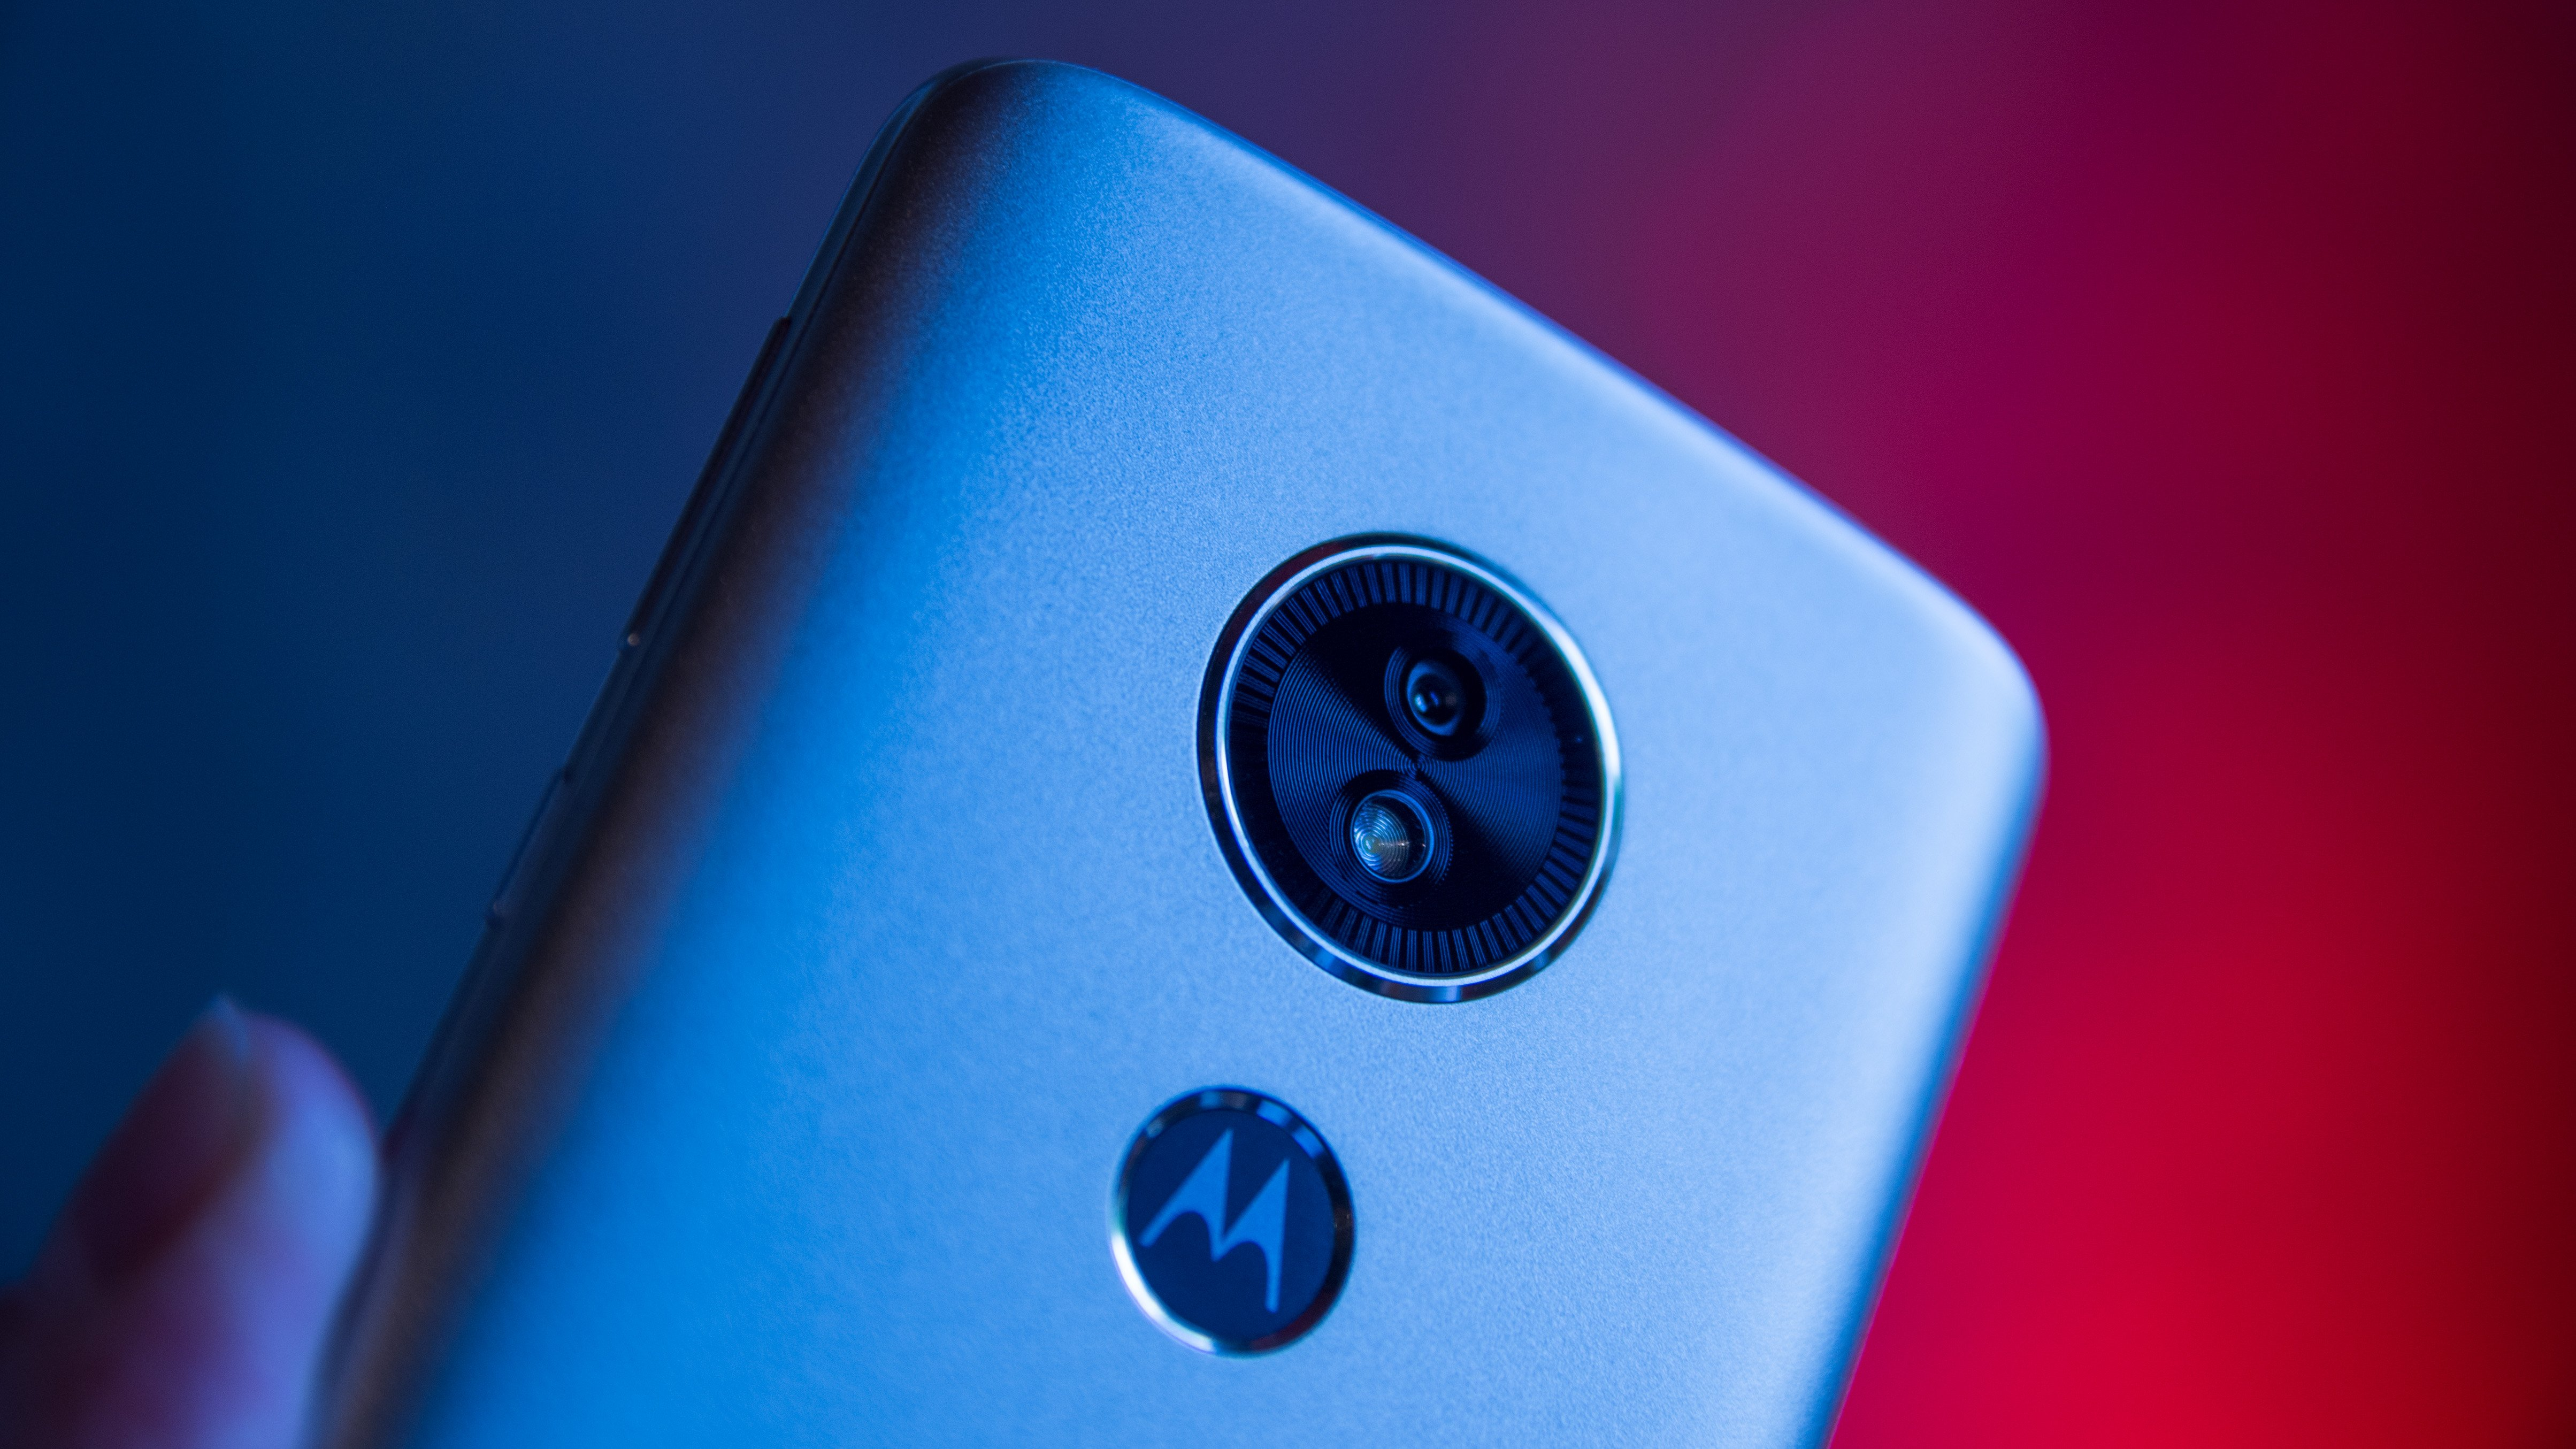 Motorola Moto E5 review: A whole lot of phone for not much